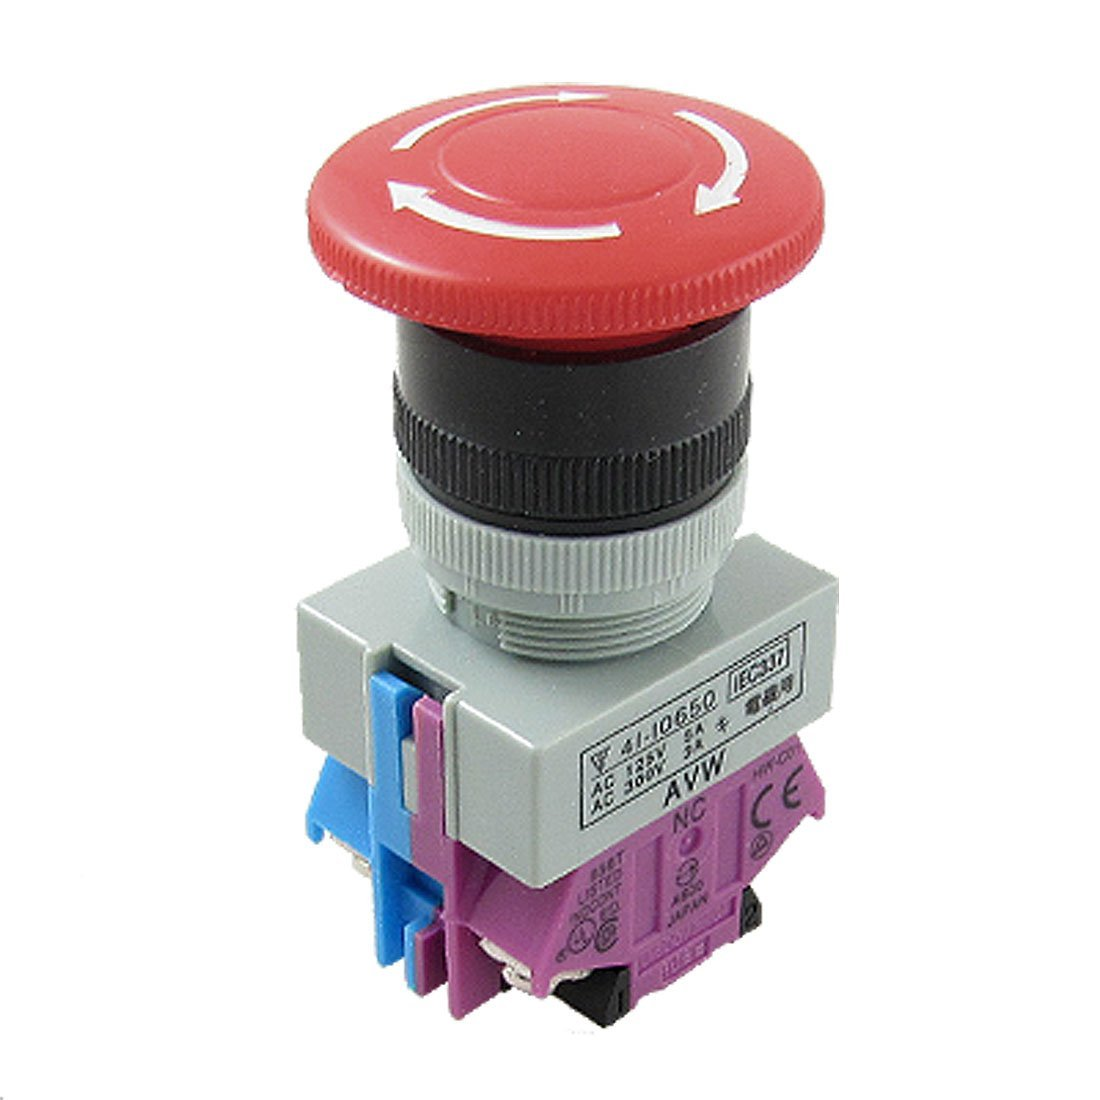 sourcingmap Latching Emergency Stop Push Button Switch w 24VDC Red Light AC 250V 0.5A 16mm Mounting Dia SPDT 1NO 1NC 4P Mushroom Head a17031000ux0114